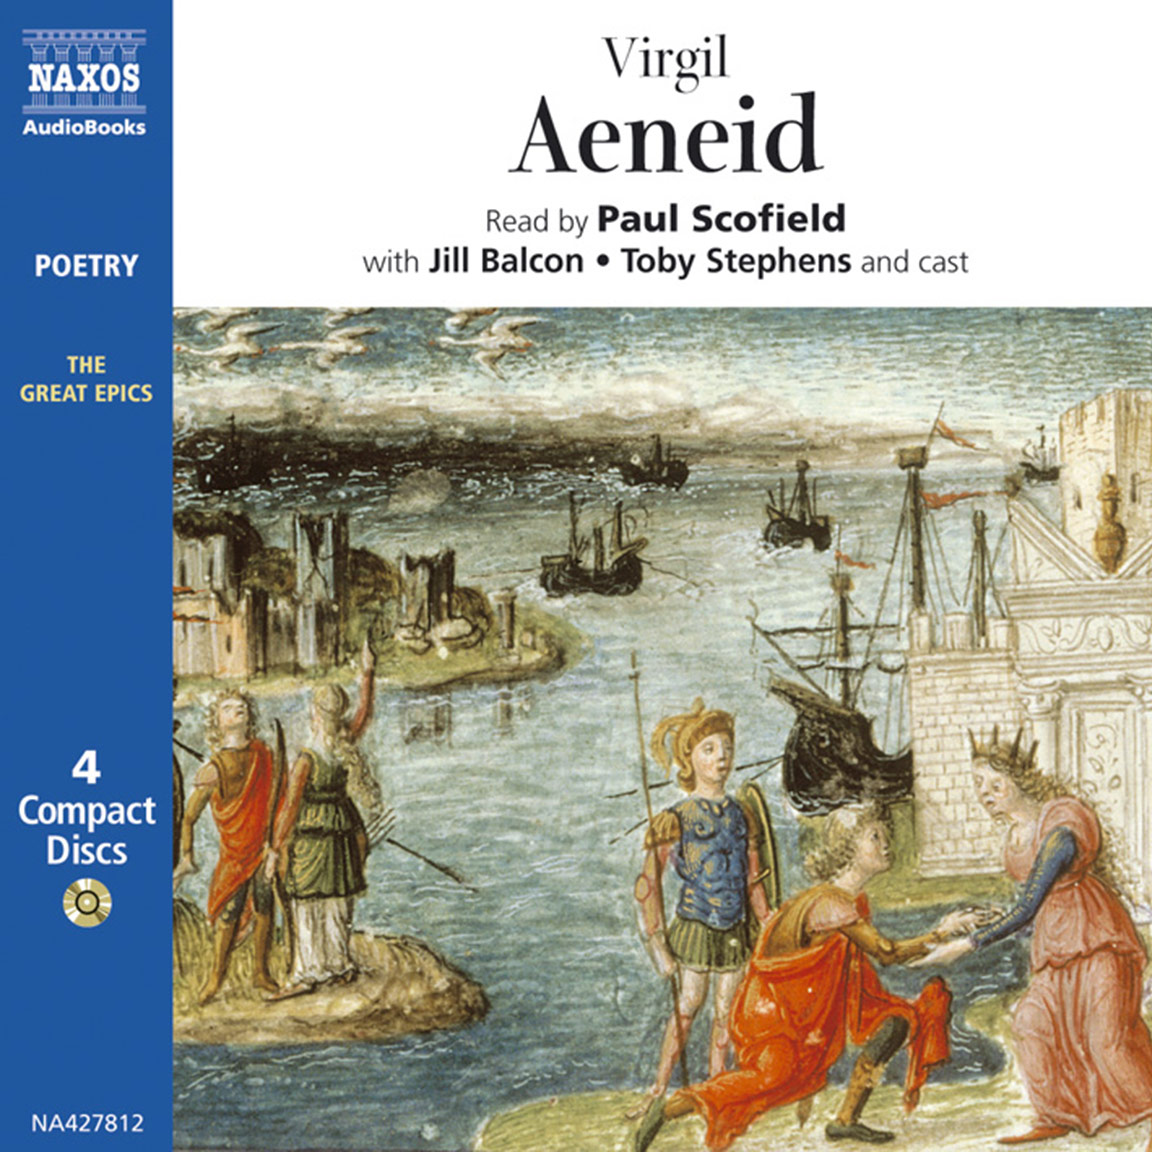 a review of the book the aeneid on the odessey Heaney's account of aeneas's encounters with the dead across death's river is   have all produced creative reimaginings of homer's iliad or odyssey  heaney  retains that same sense of derry earthiness in aeneid book vi.